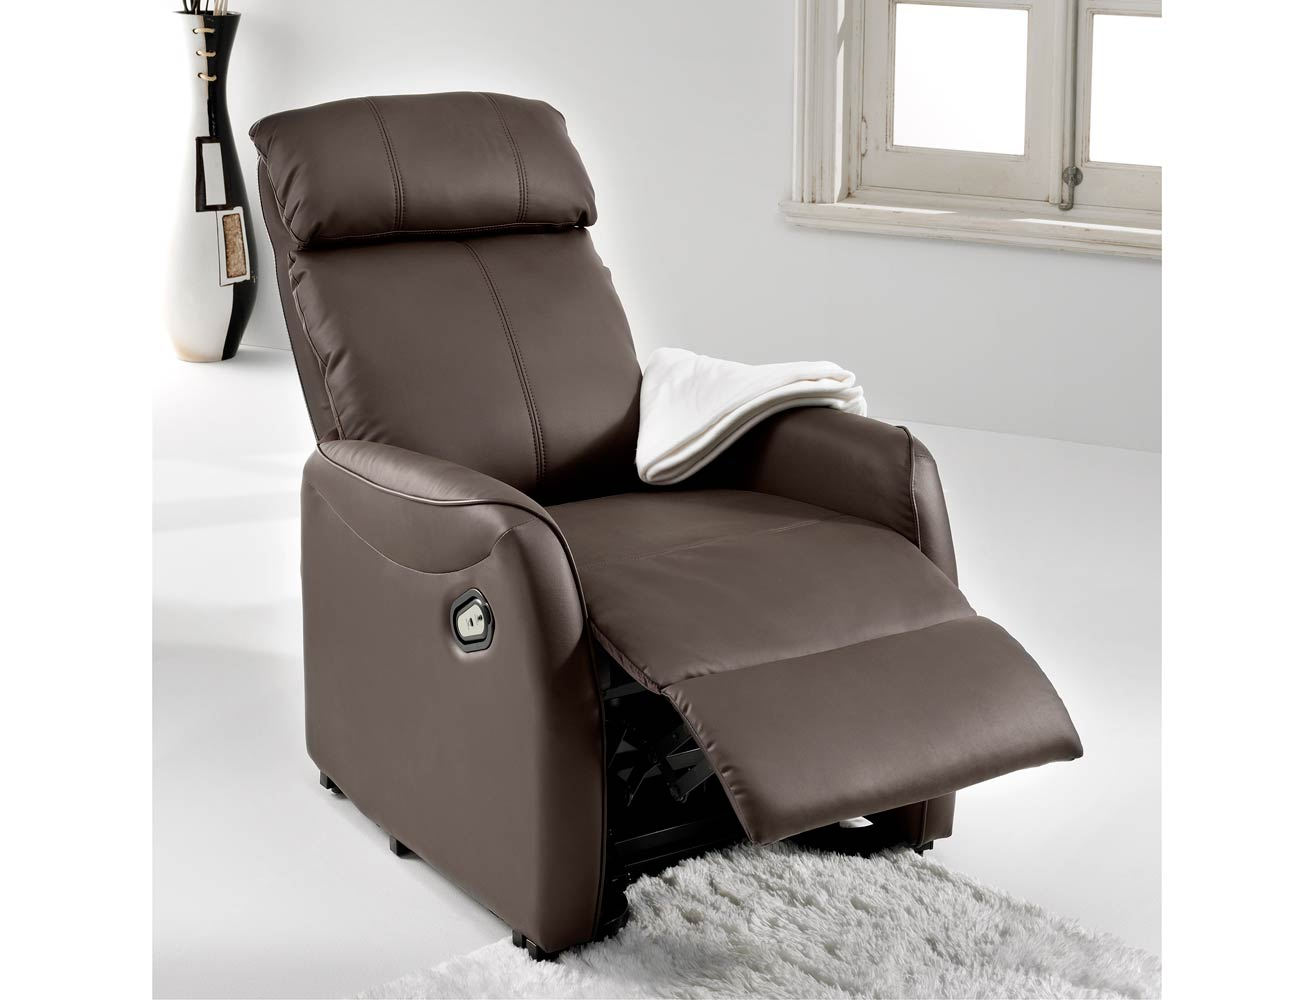 Sillon relax levanta personas power lift simil piel choco 21